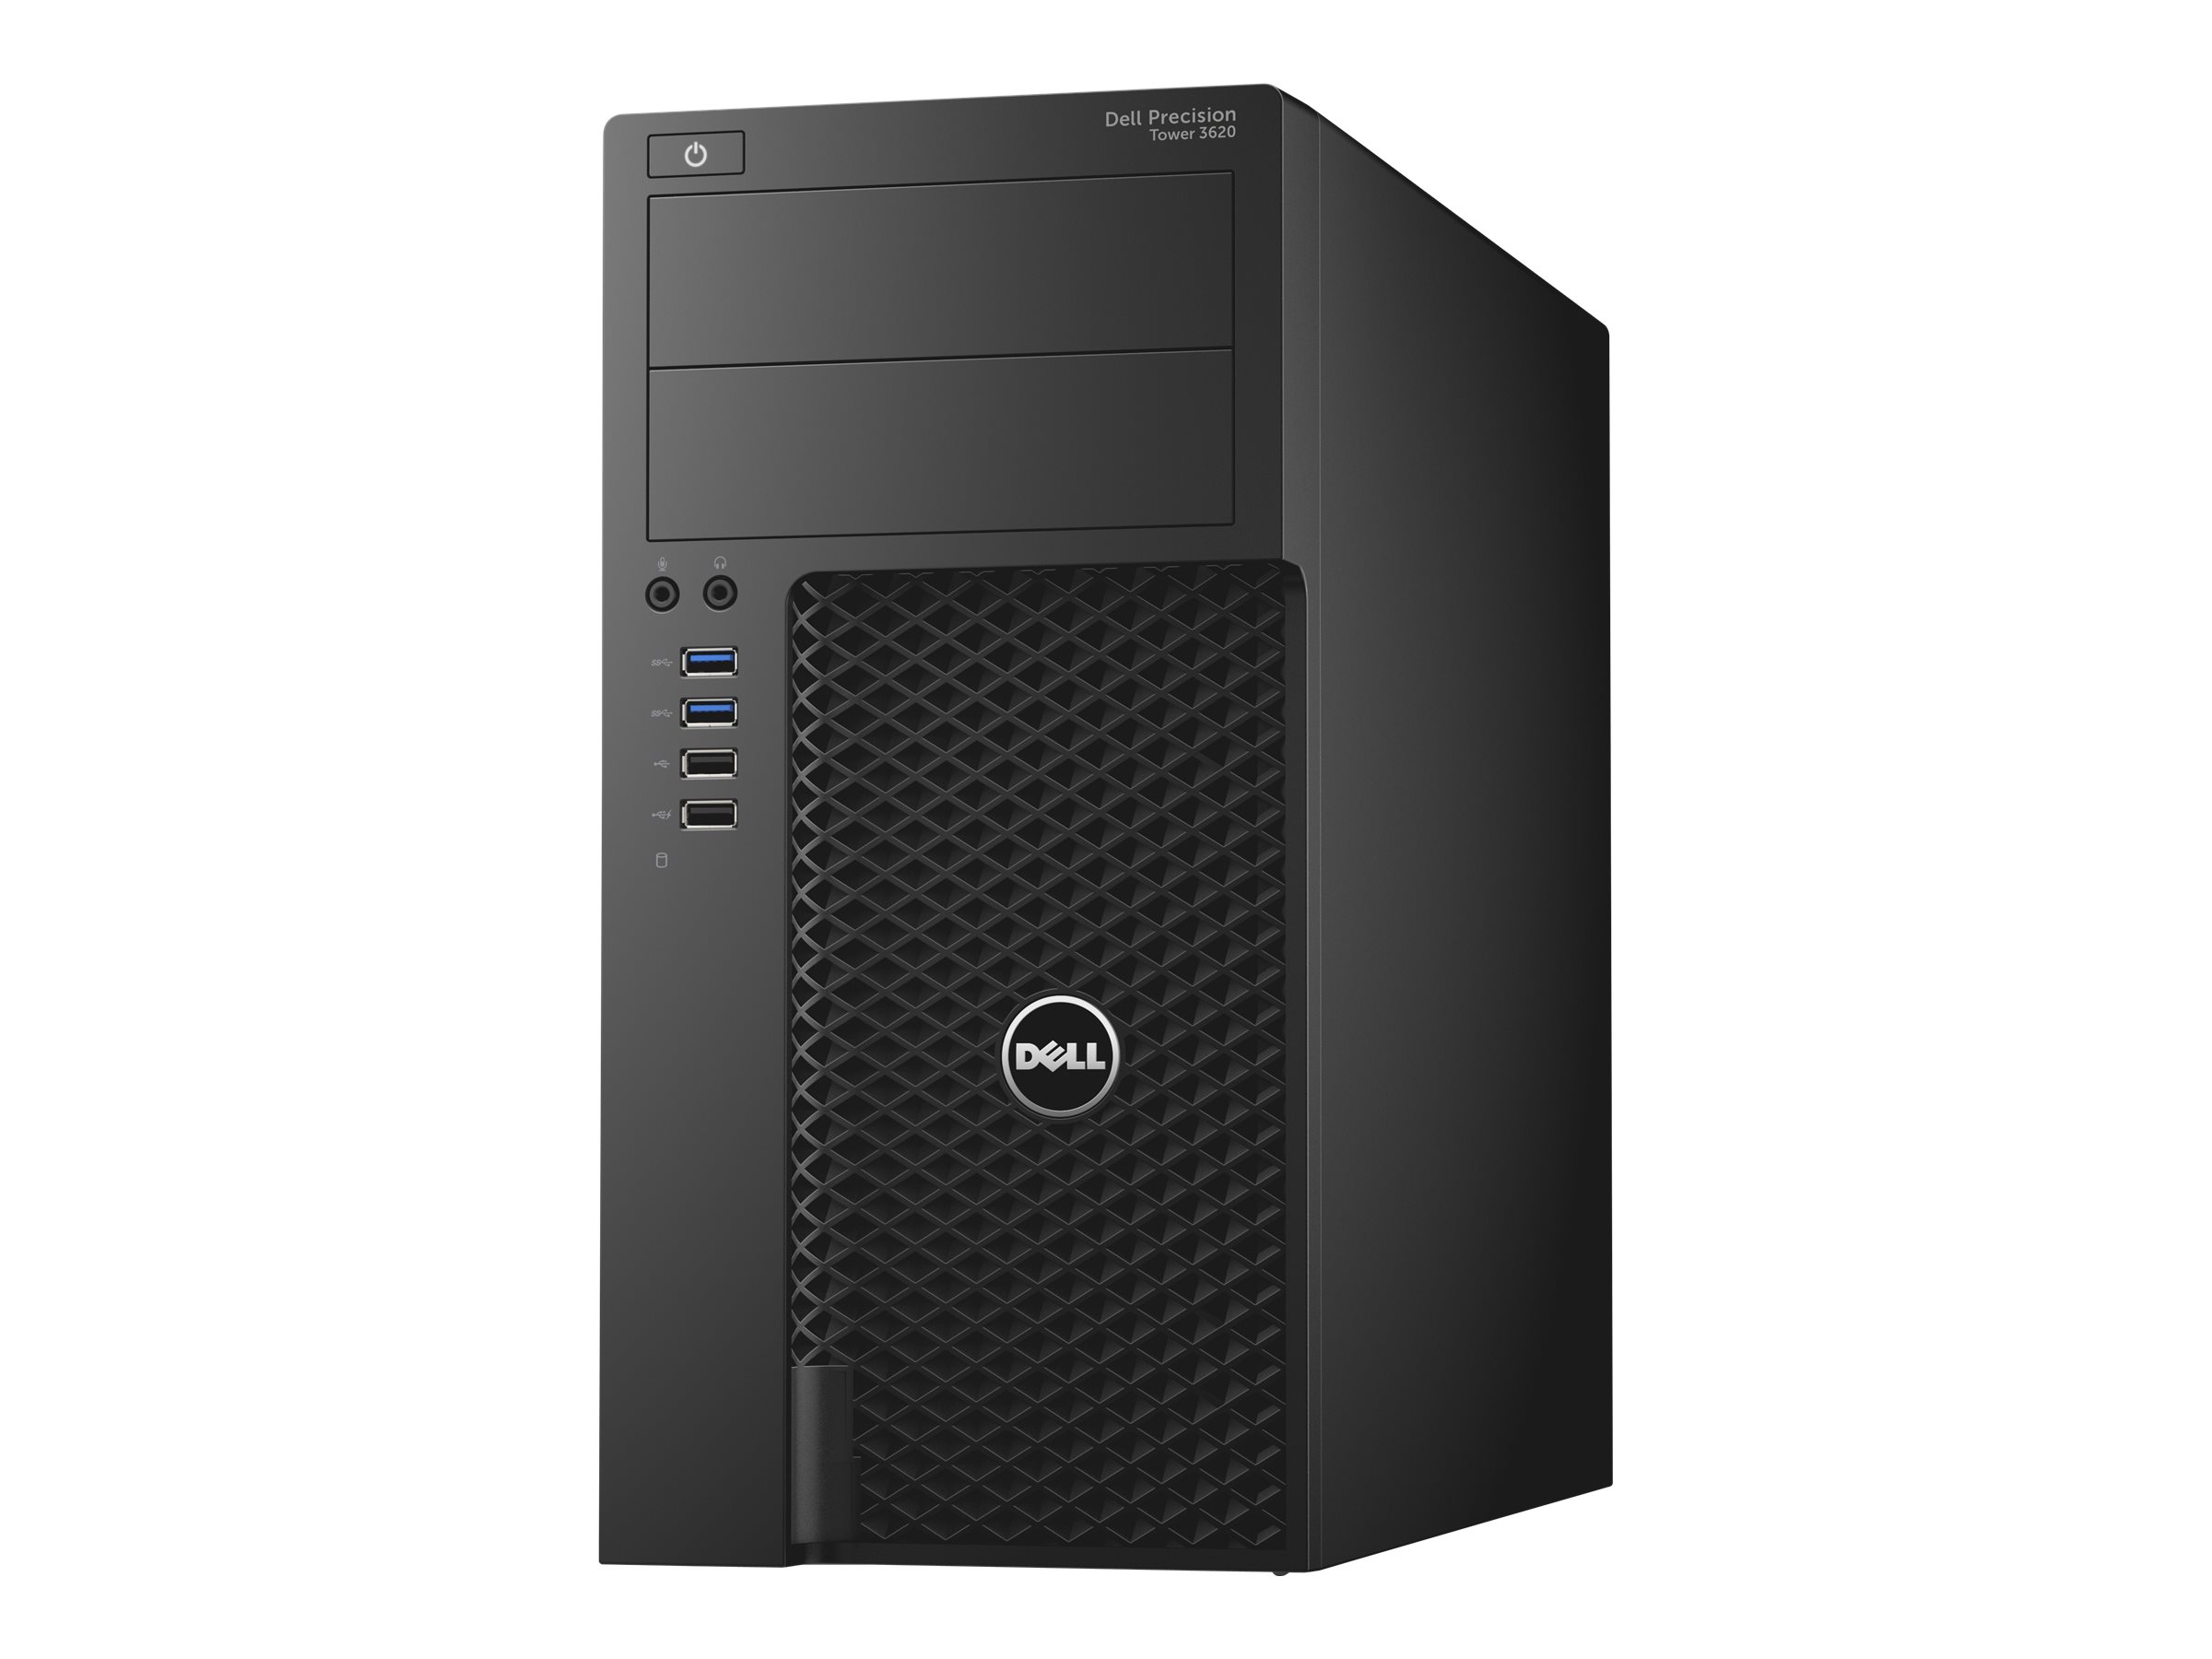 Dell Precision Tower 3620 - MDT - 1 x Core i7 6700 / 3.4 GHz - RAM 8 GB - HDD 1 TB - DVD-Writer